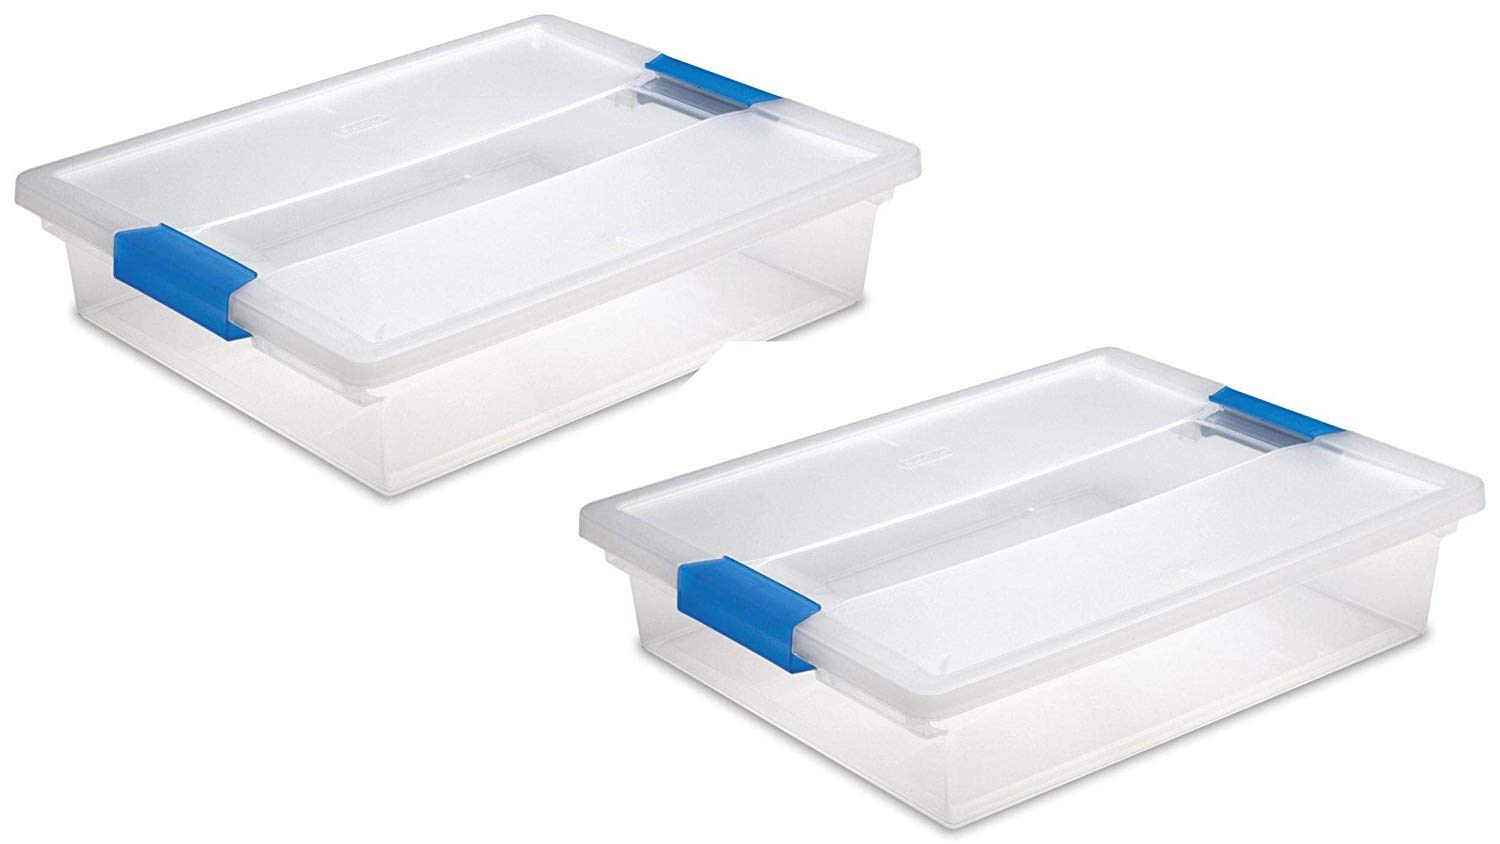 STERILITE Large Clip Box, Clear with Blue Aquarium Latches, 2 Pack by STERILITE